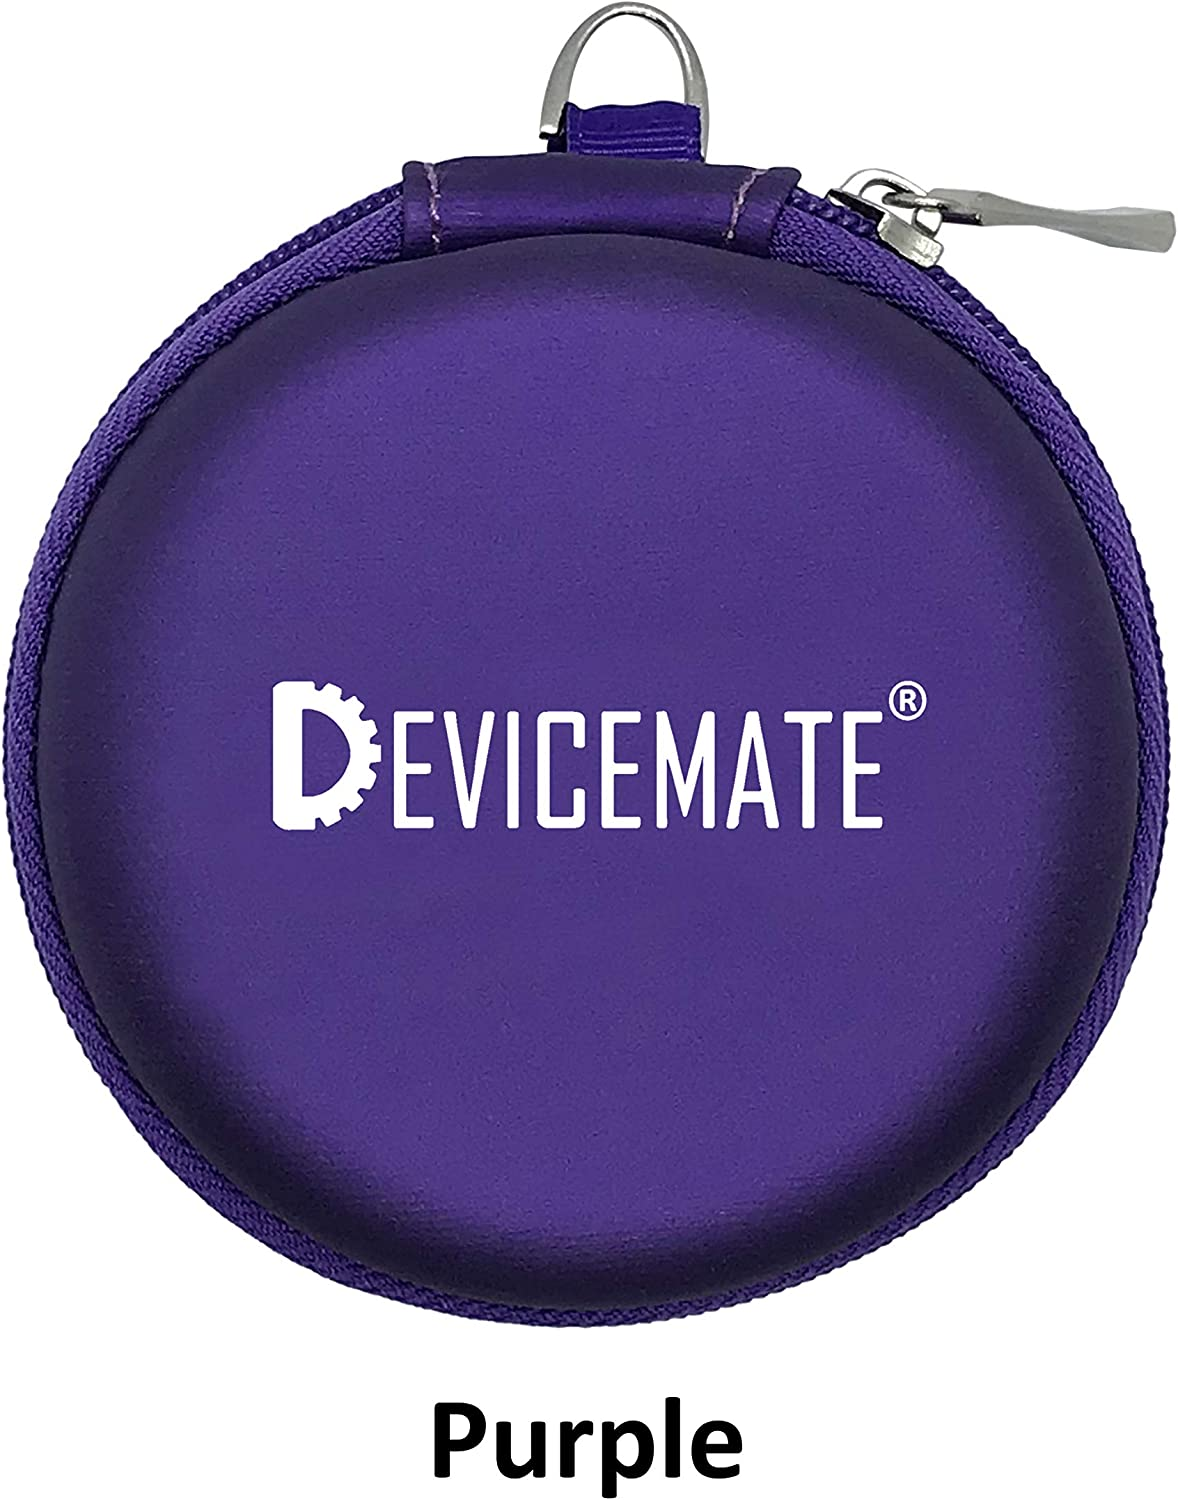 in-Ear Wired Earbuds Durable Earphones Headphones_Best Ear Buds Ear Phones for Cell Phone Smartphone Tablet MP3 MP4 CD DVD Player Laptop Notebook Computer. Earphone Case [Purple] DEVICEMATE SD 255